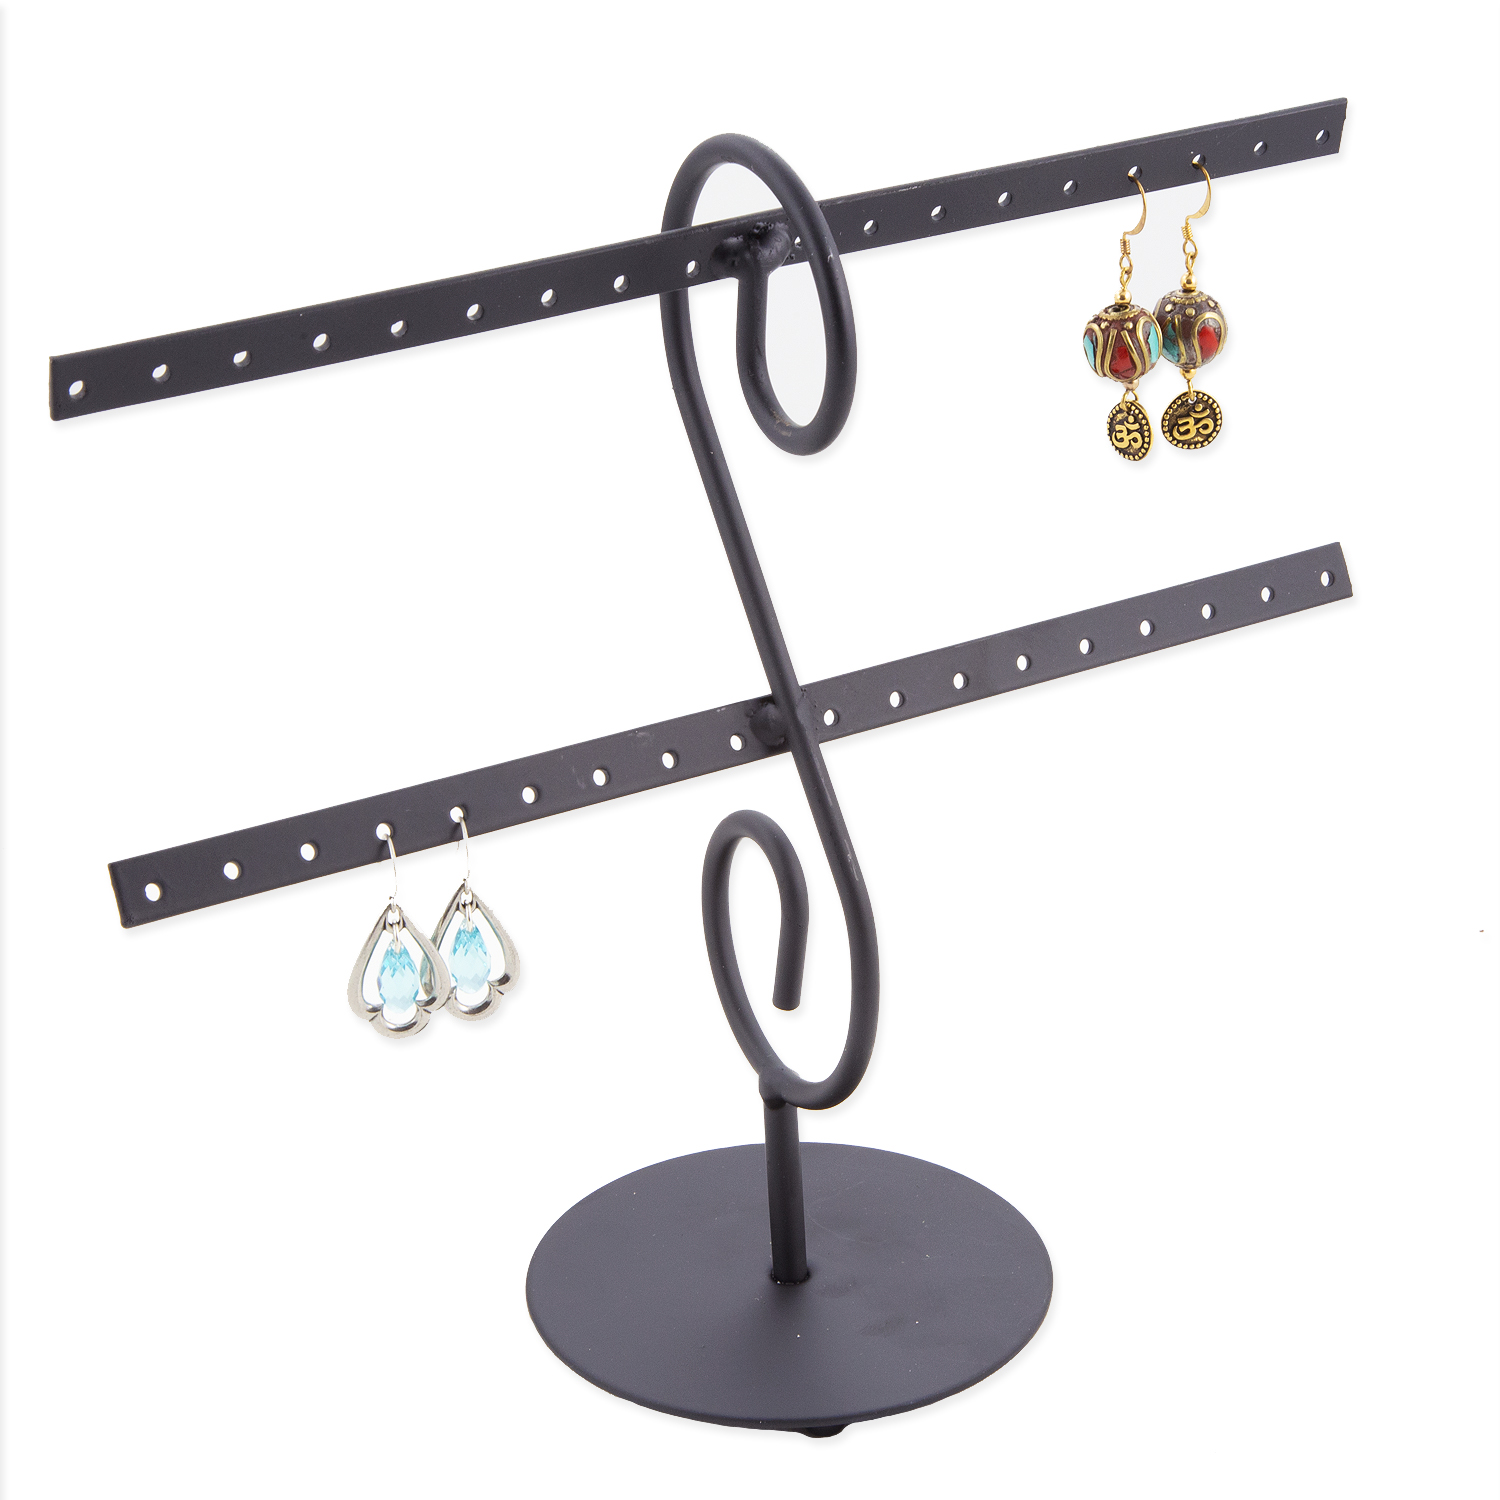 Metal Earring Rack Jewelry Display Holds16 Pairs